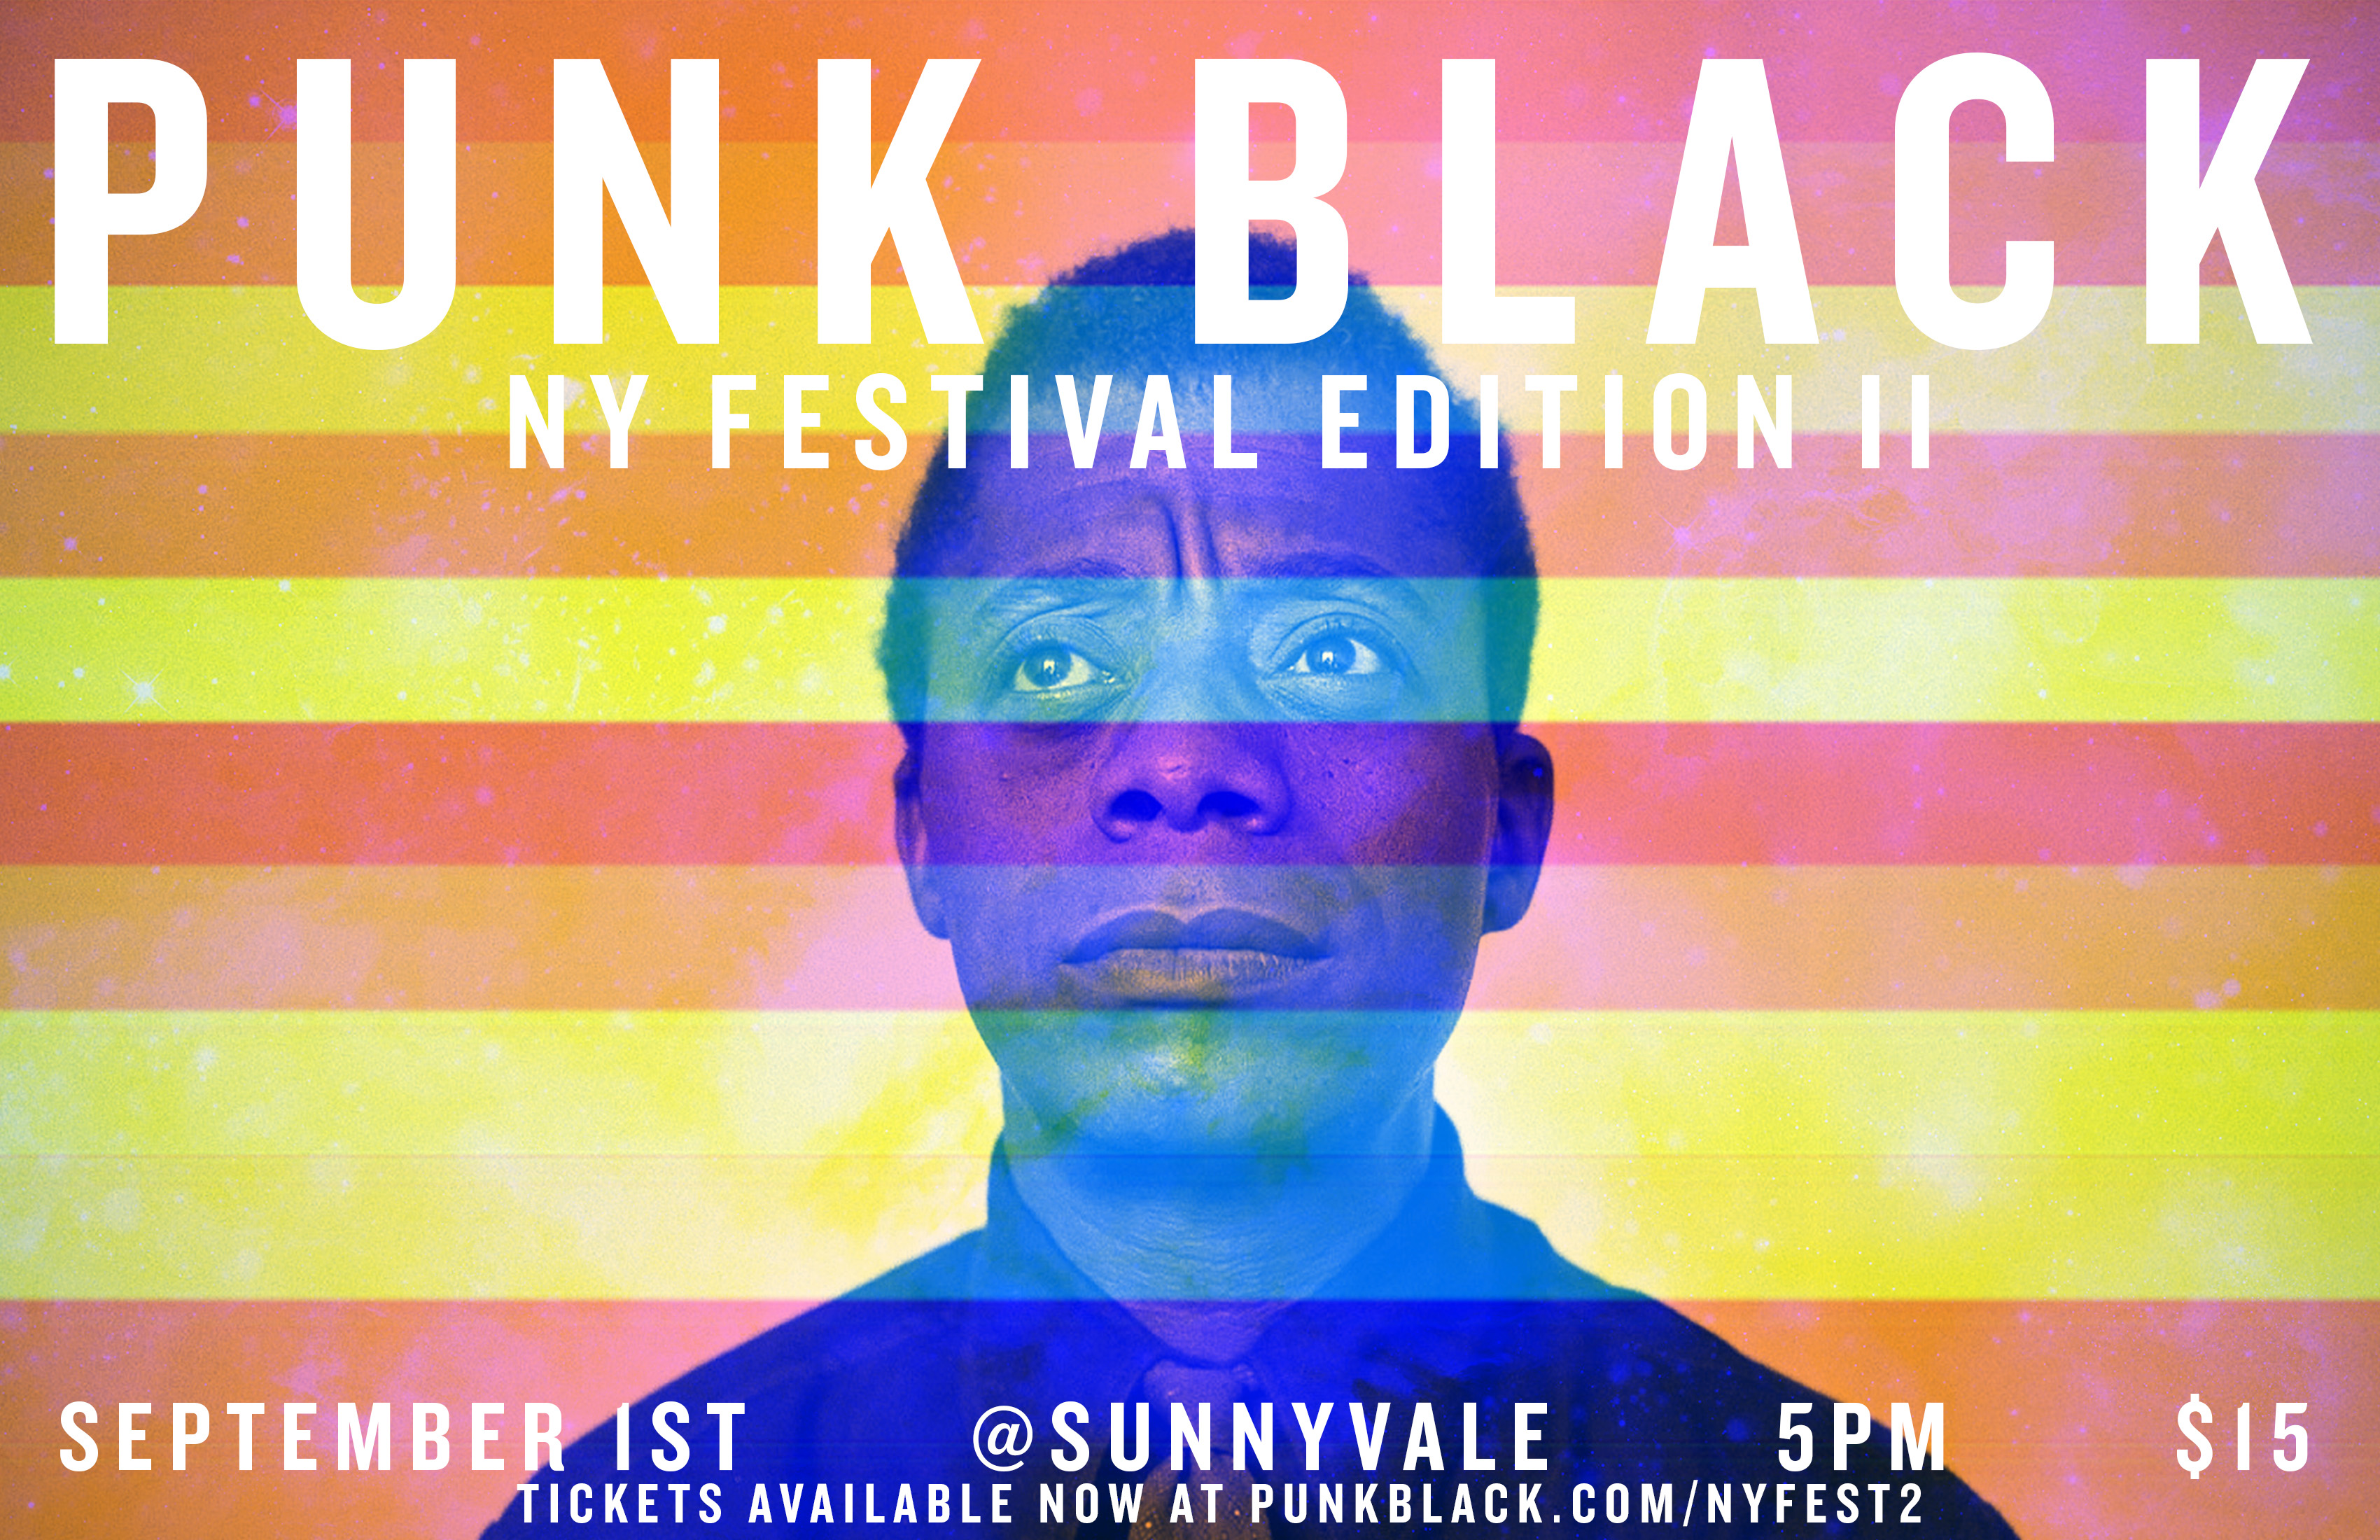 PUNK BLACK NY Festival Edition II